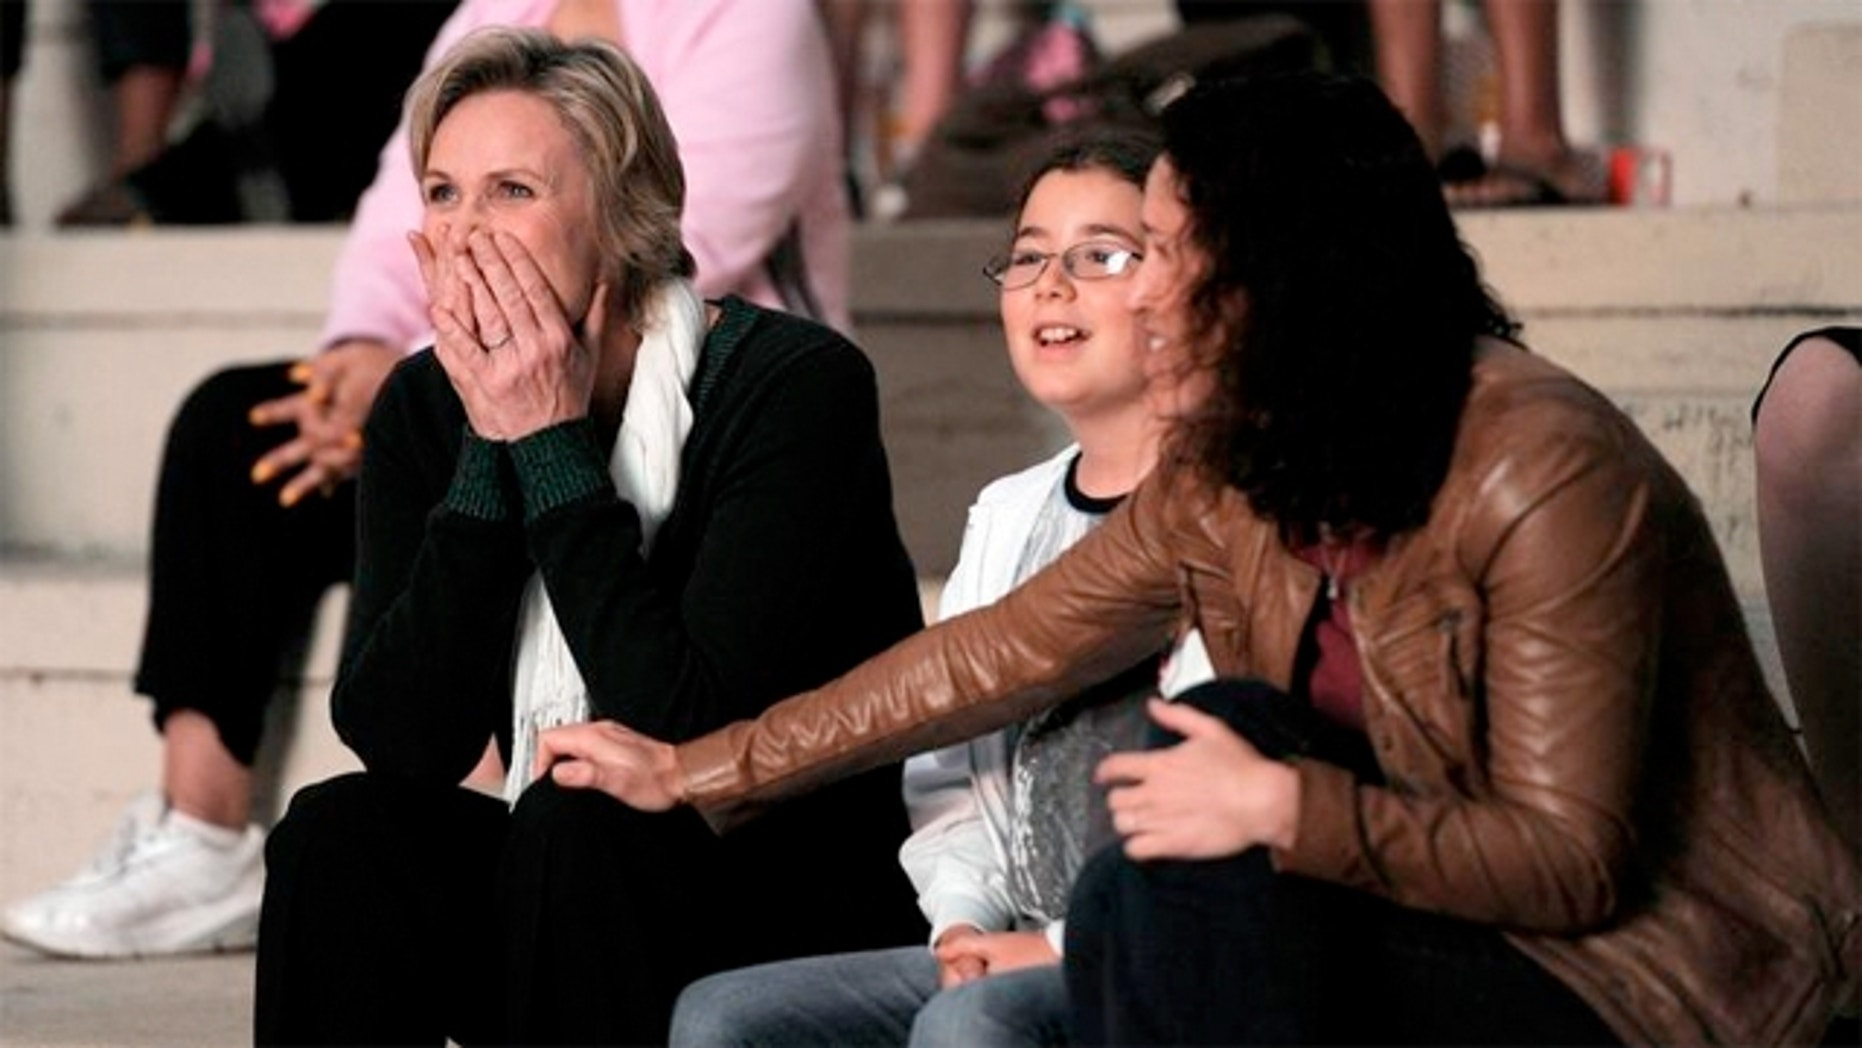 Jane Lynch with wife Dr. Lara Embry and Chase, one of her two step-daughters.